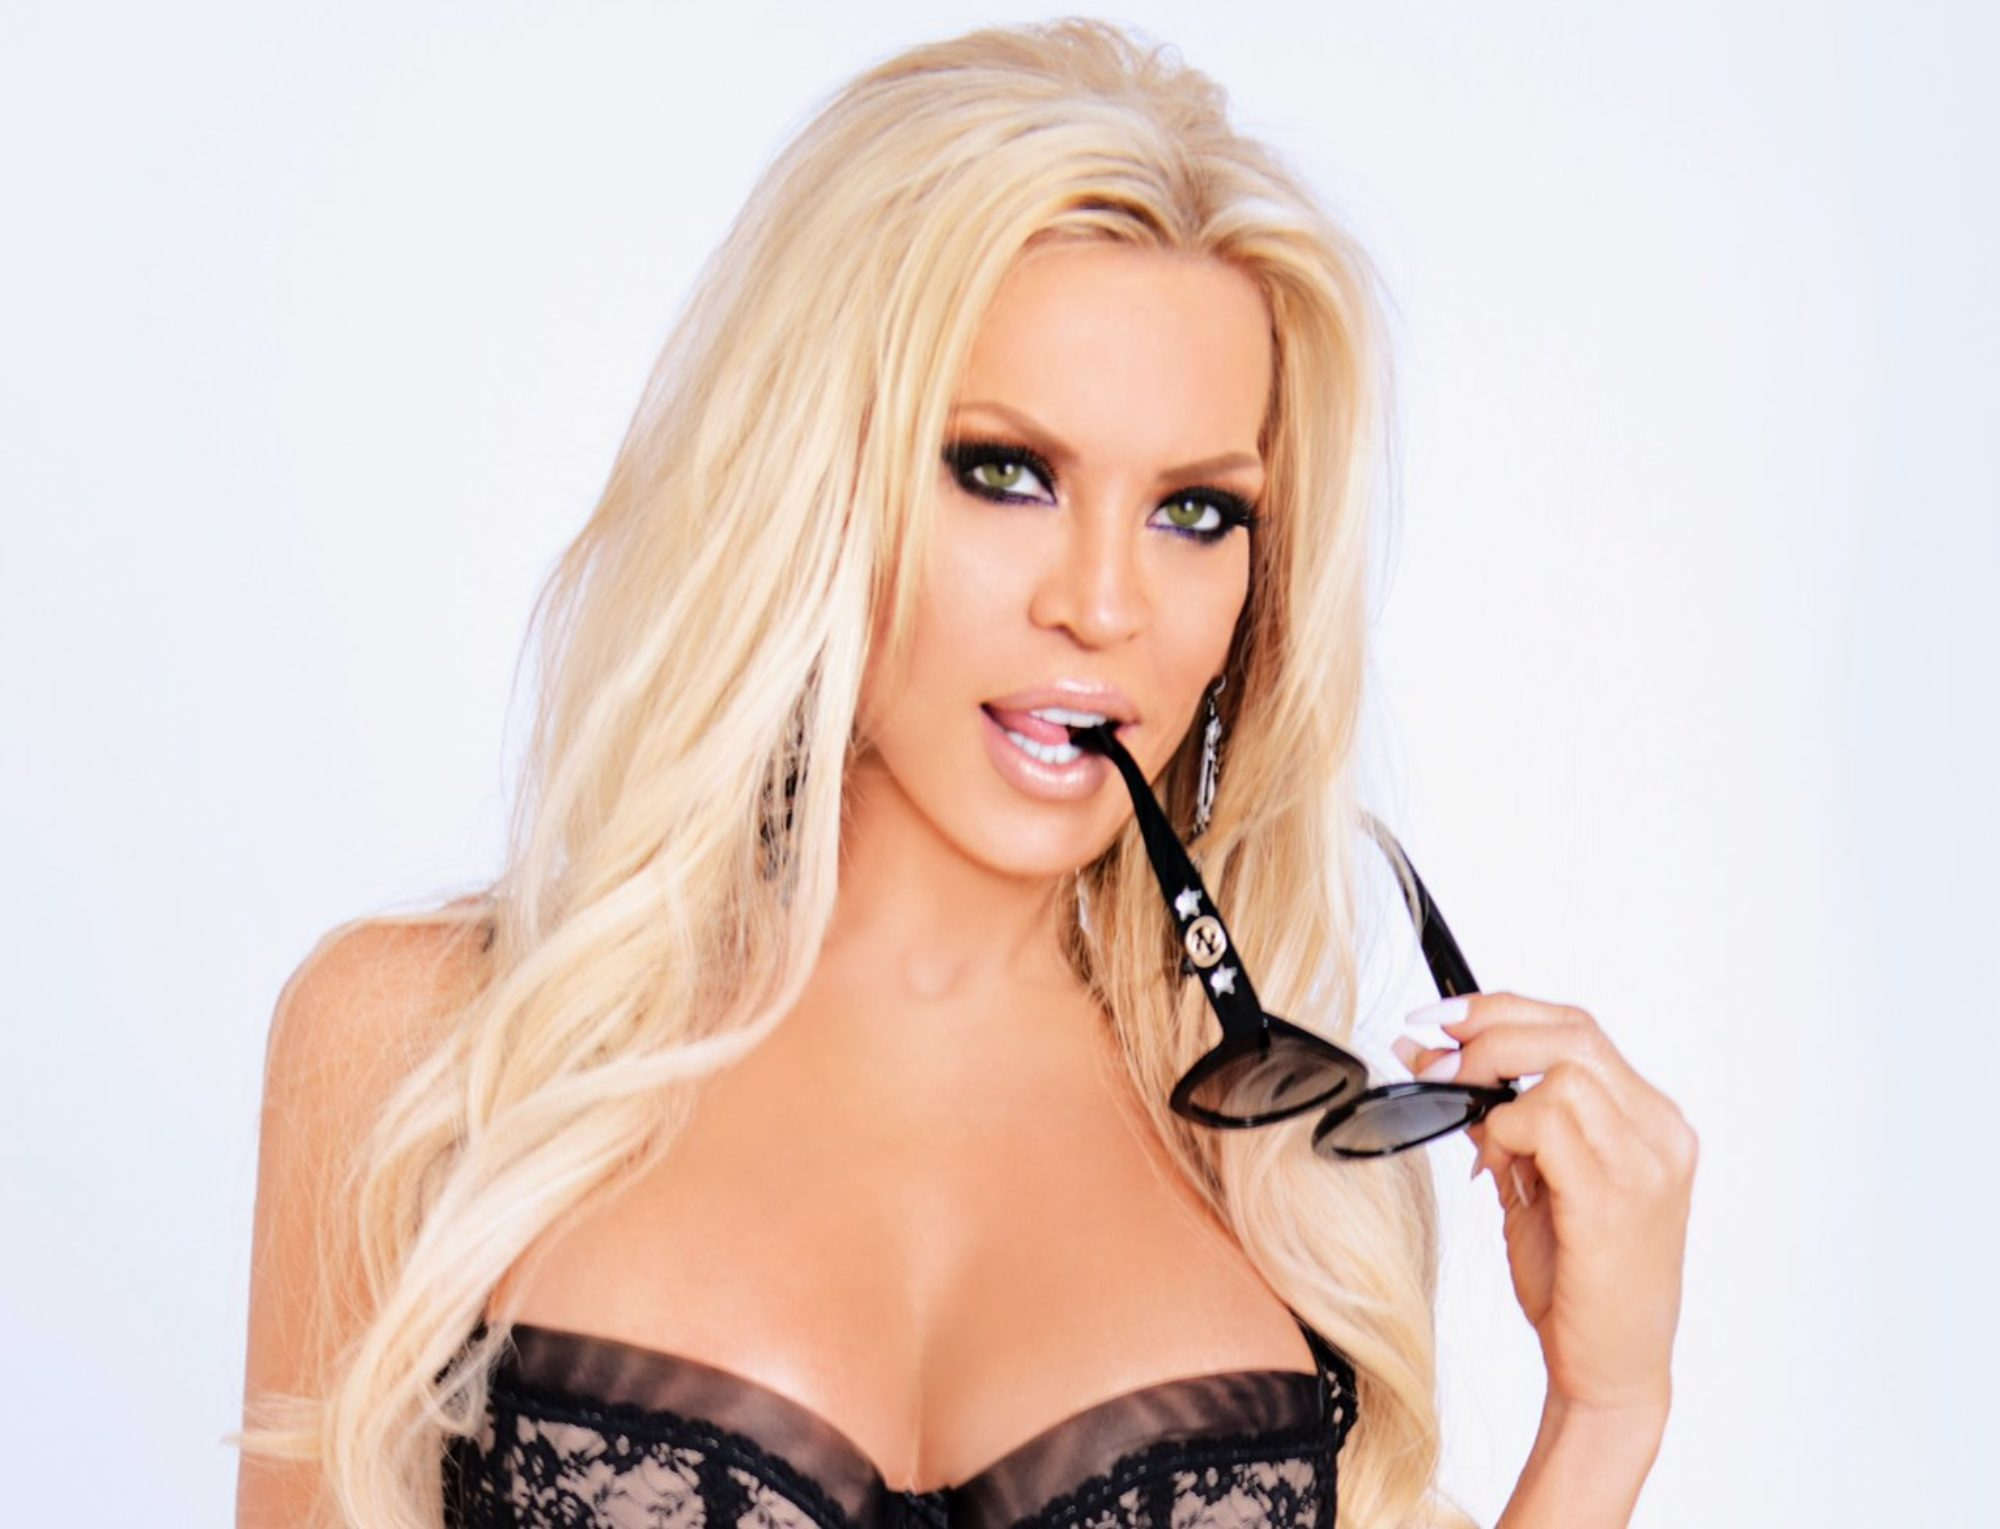 Amber Lynn Naked legendary adult star - amber lynn - official site of the